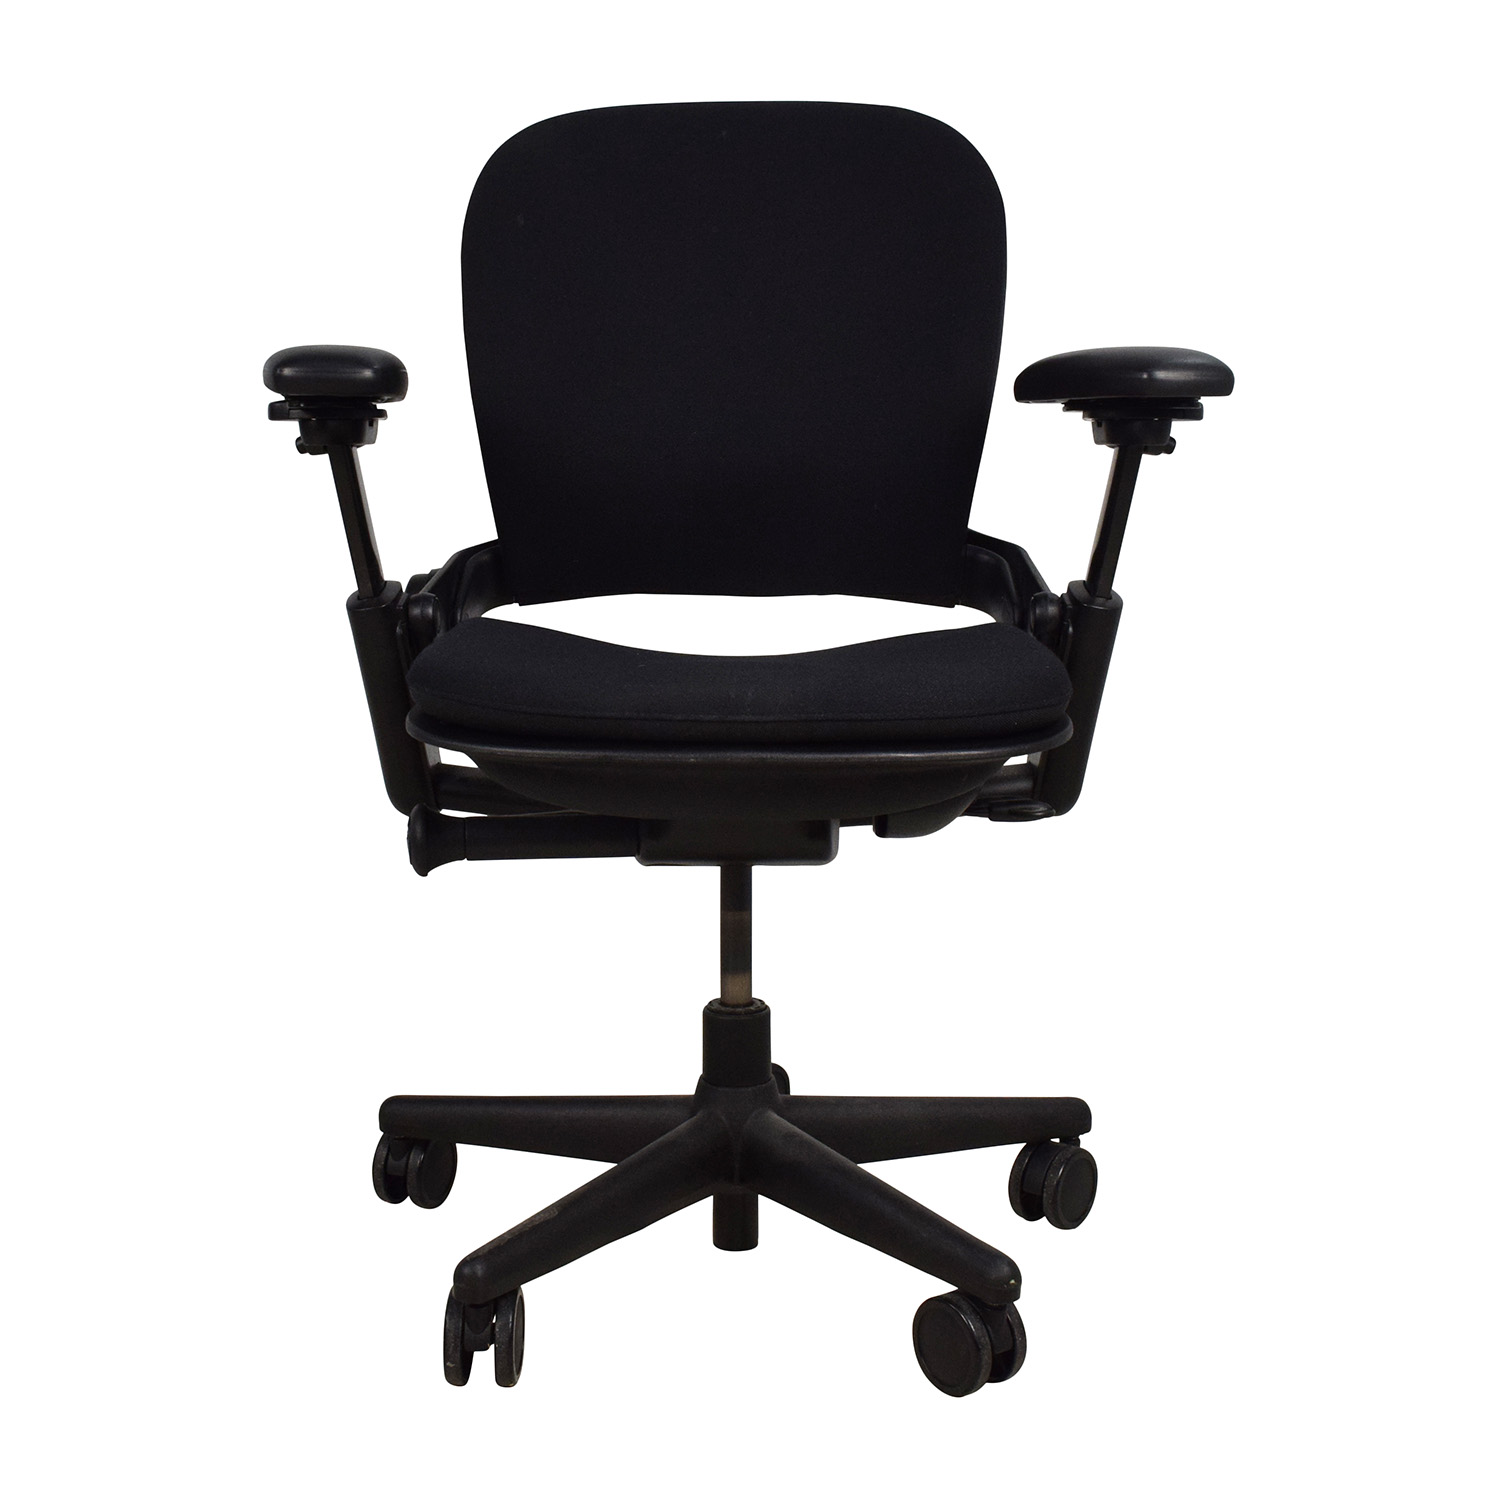 Adjustable Black Office Desk Chair / Chairs